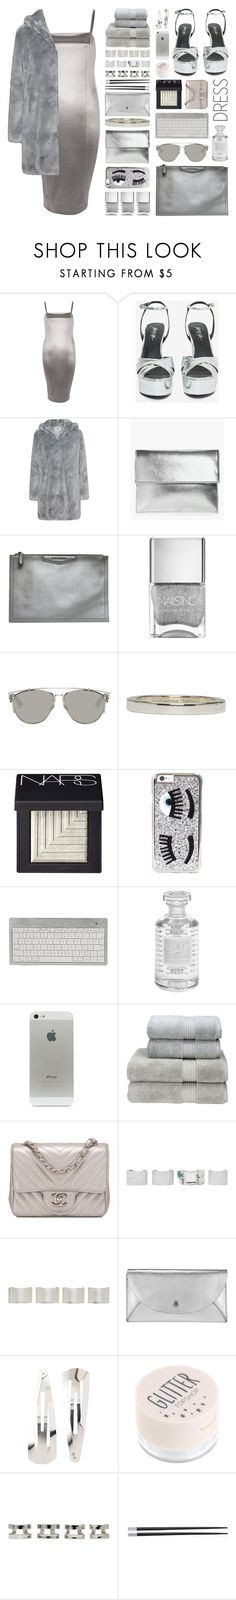 """""""Shotout to my Ex"""" by igedesubawa ❤ liked on Polyvore featuring River Island, Privileged, Boohoo, Givenchy, Christian Dior, Le Gramme, NARS Cosmetics, Chiara Ferragni, Creed and Christy"""